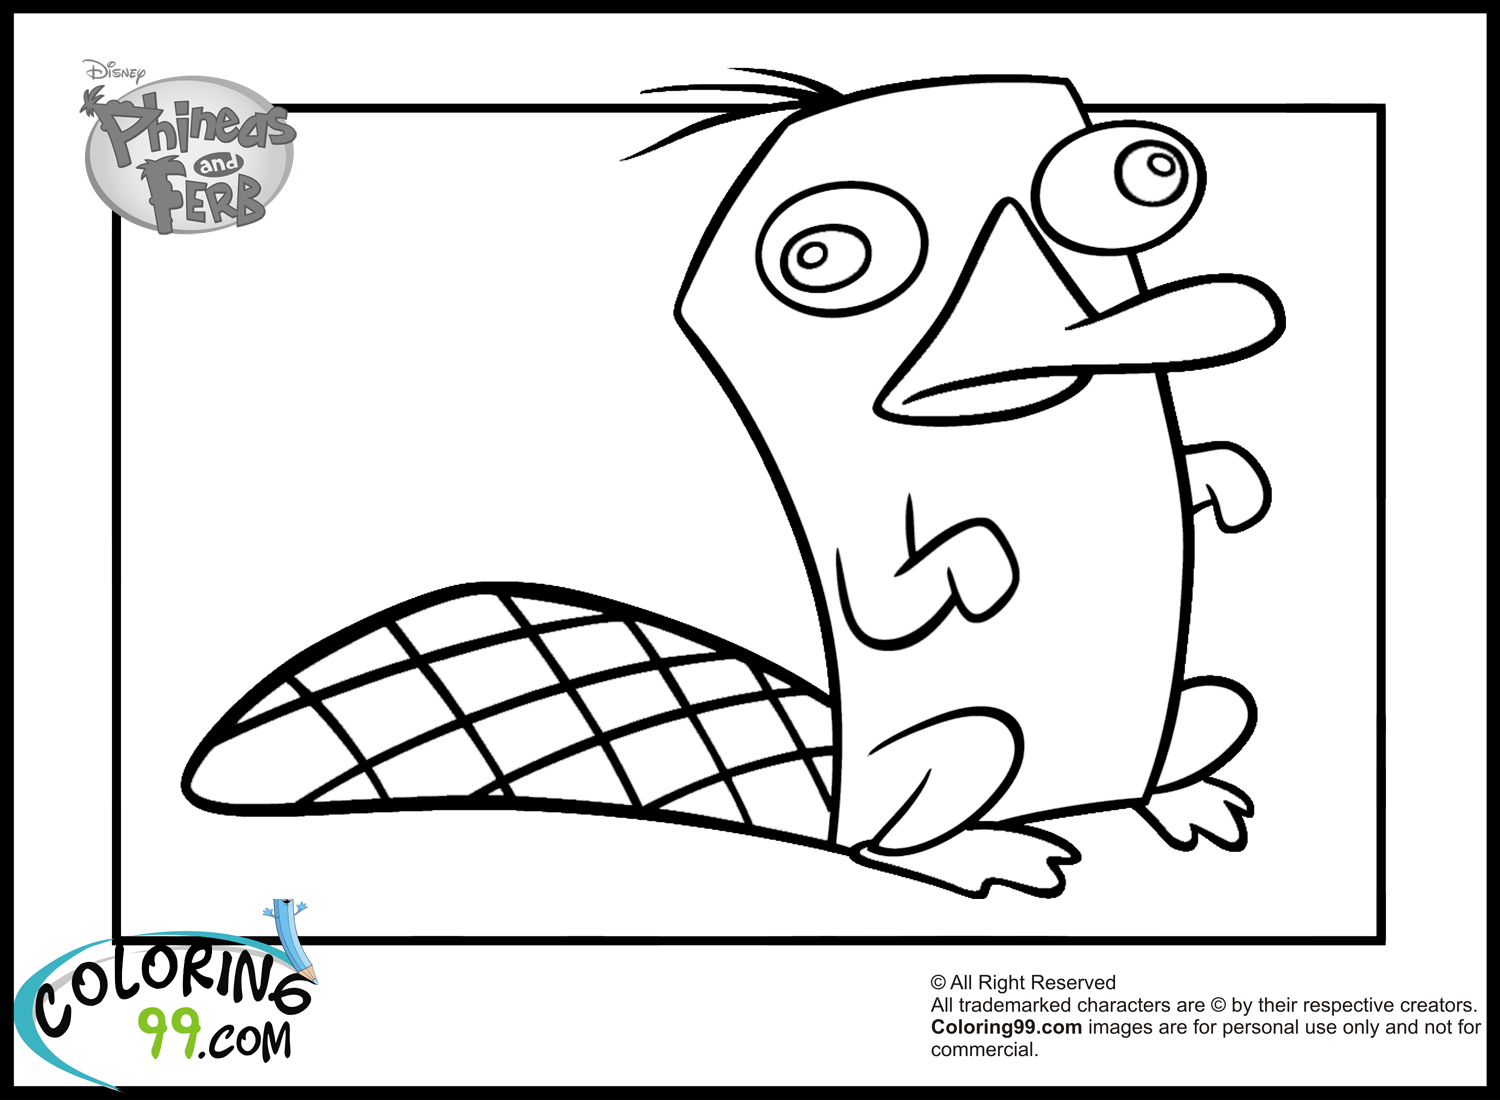 ferb and phineas coloring pages - photo#15